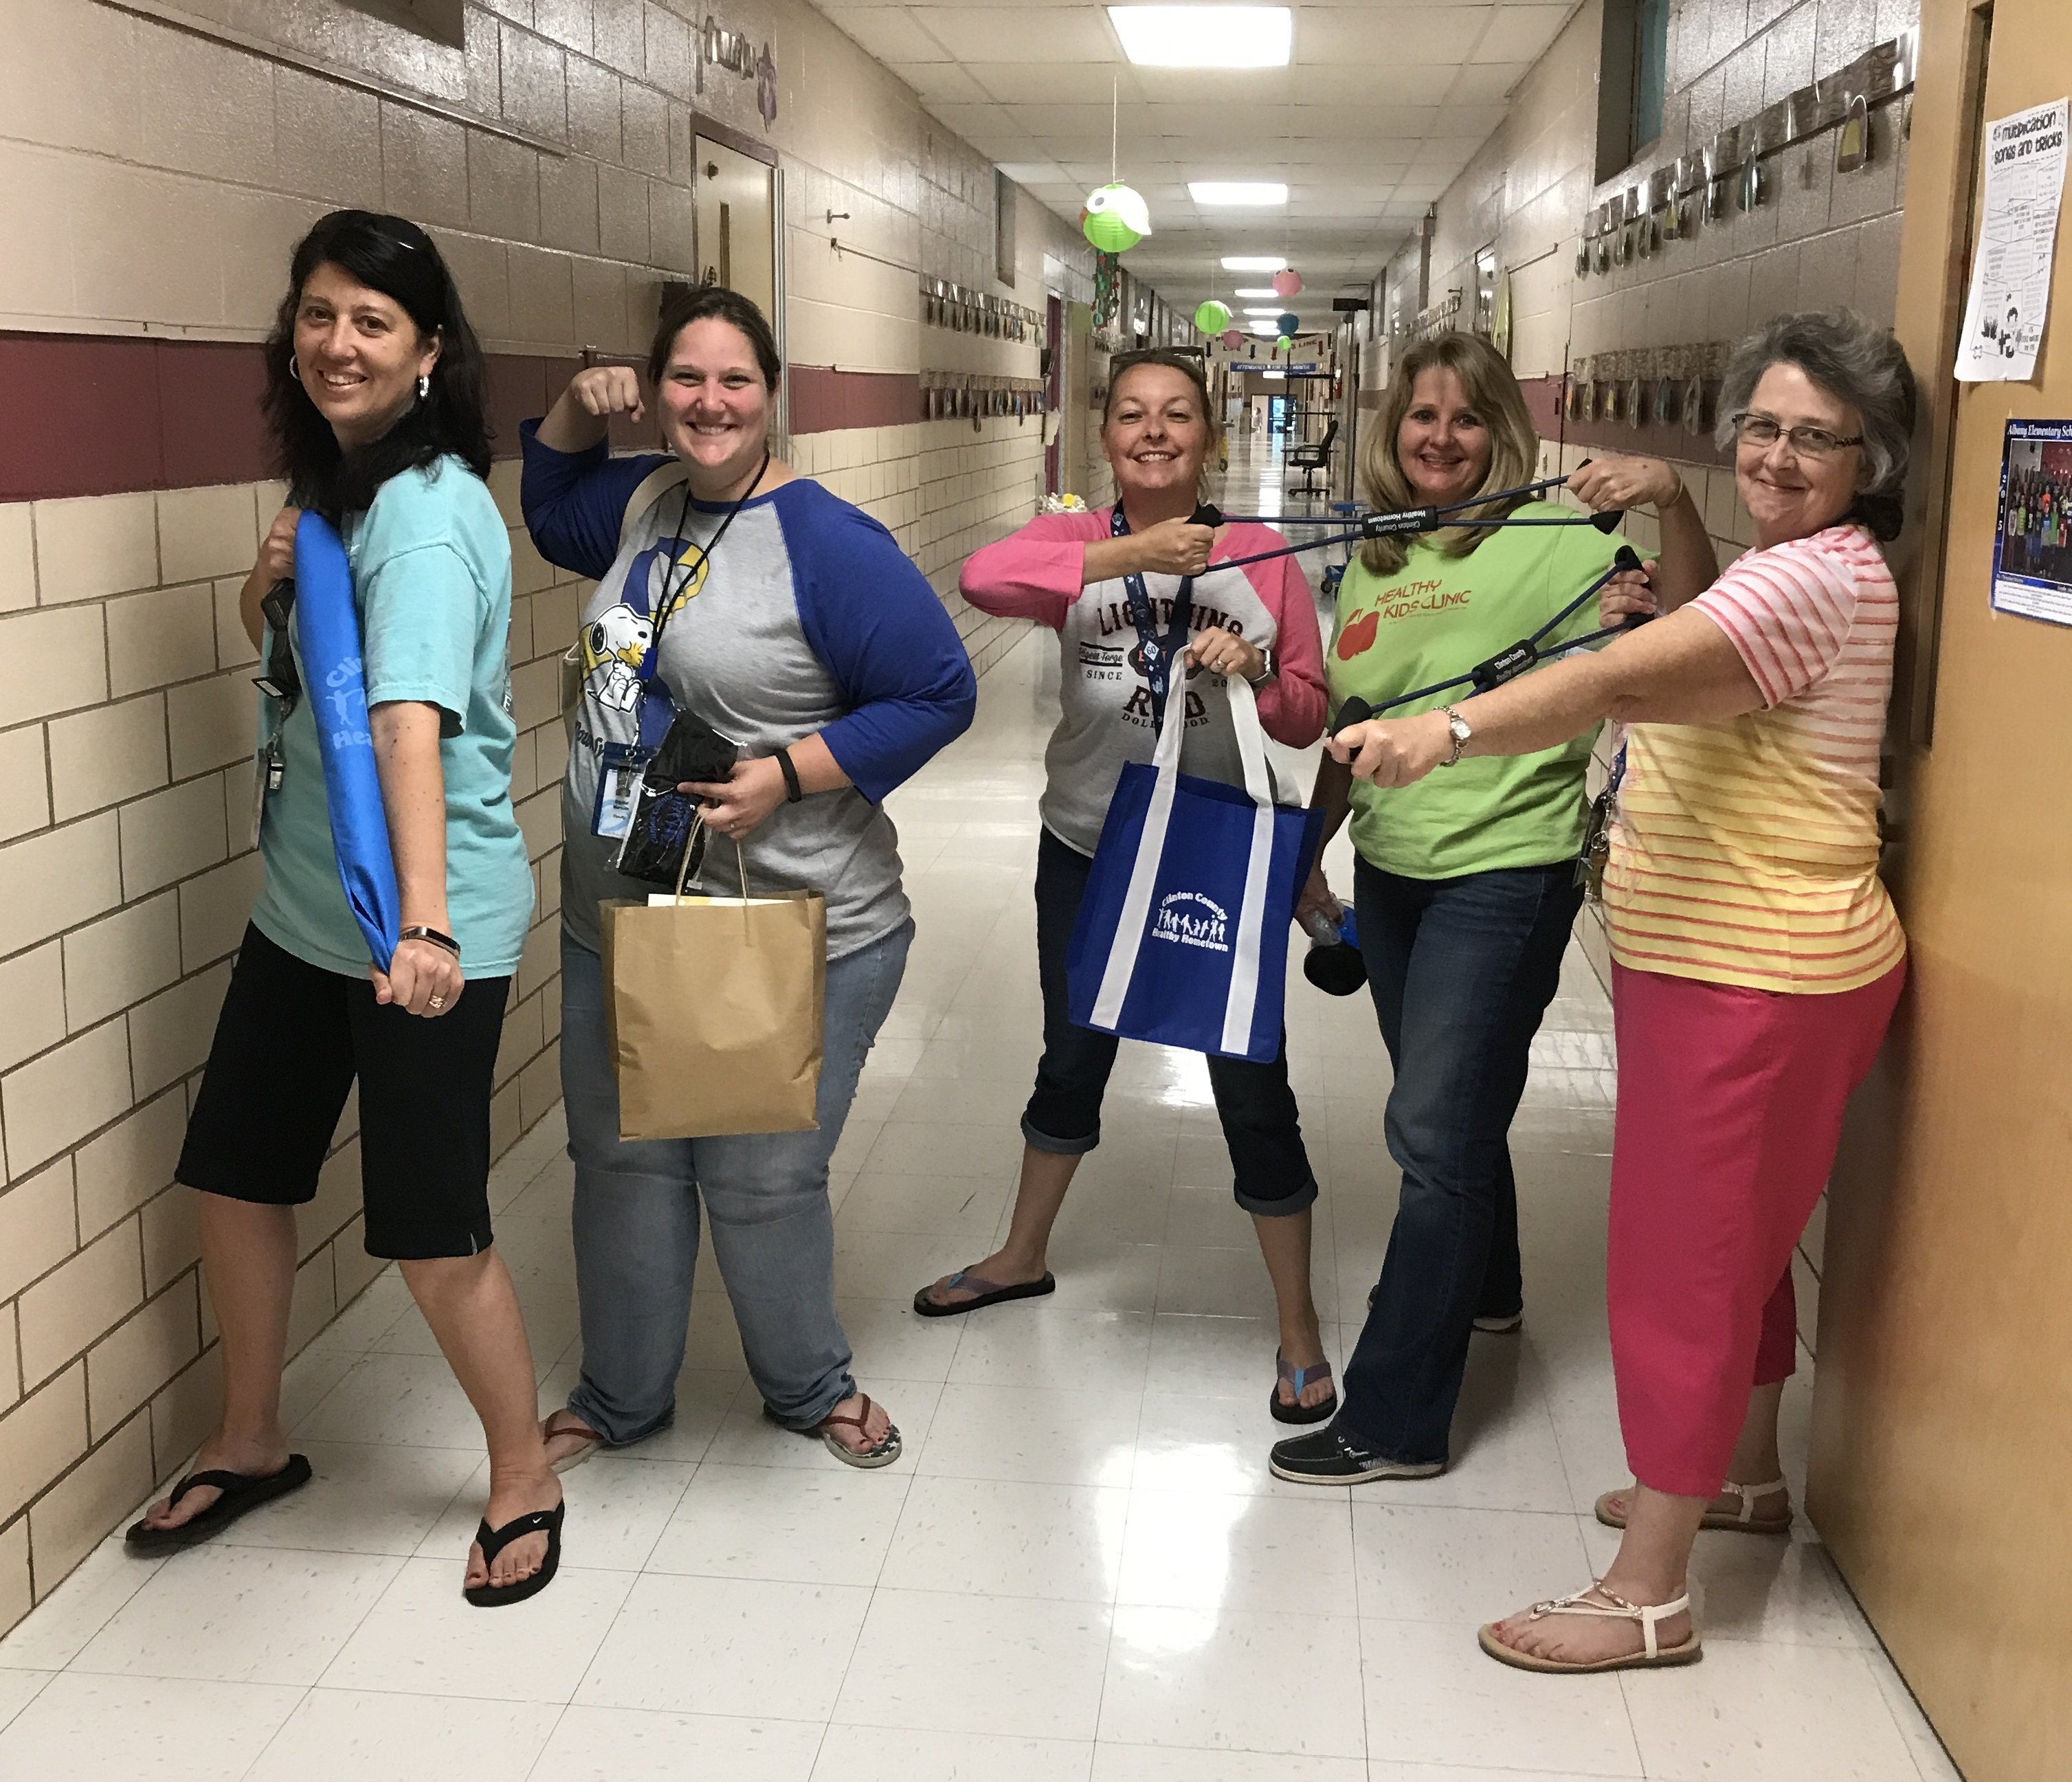 Clinton County Healthy Hometown recently awarded prizes to the faculty and staff Be Active Club members at ECC, AES, CCMS, and CCHS for the last 9-weeks.